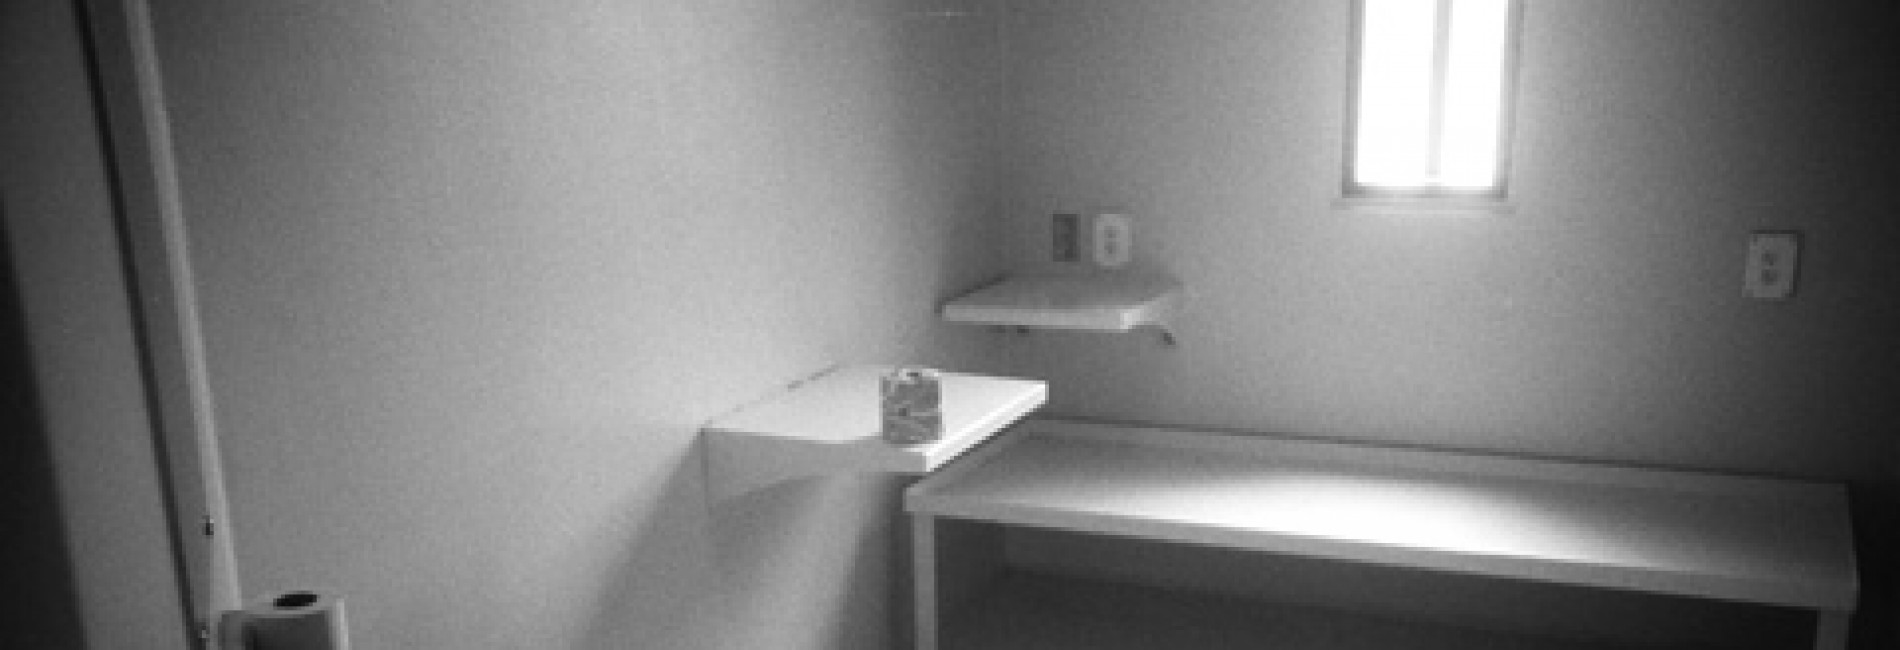 A cell in the supermax unit at Maine State Prison. Photo by Lance Tapley.